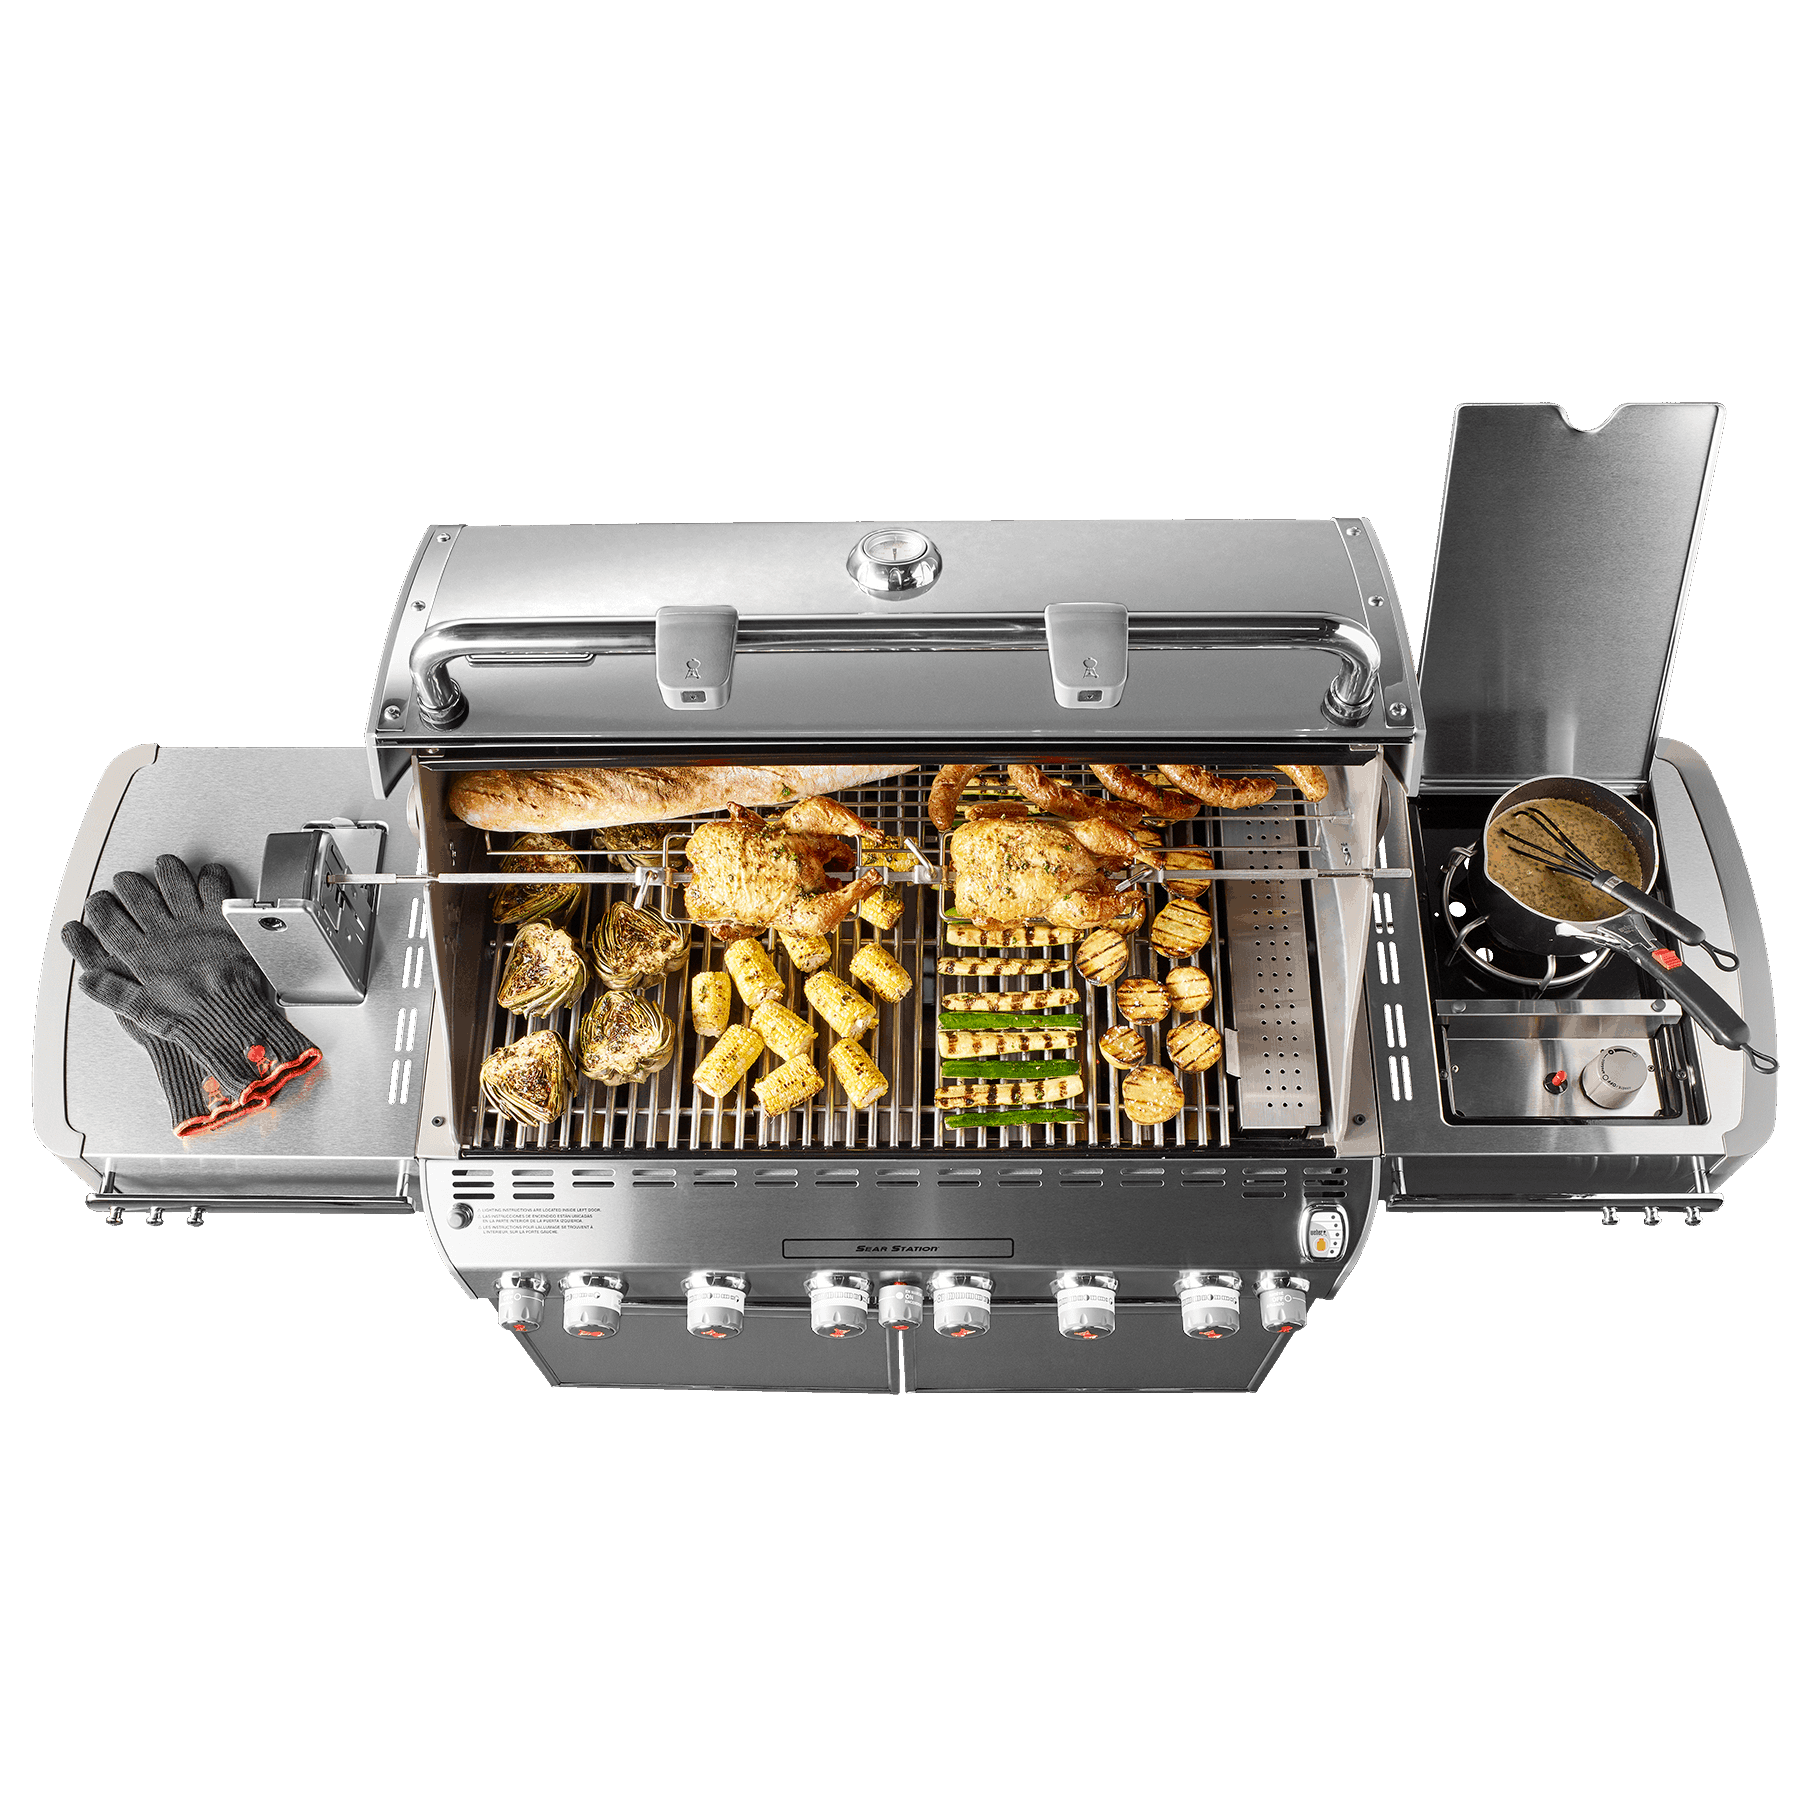 Summit® S 670 Gas Grill